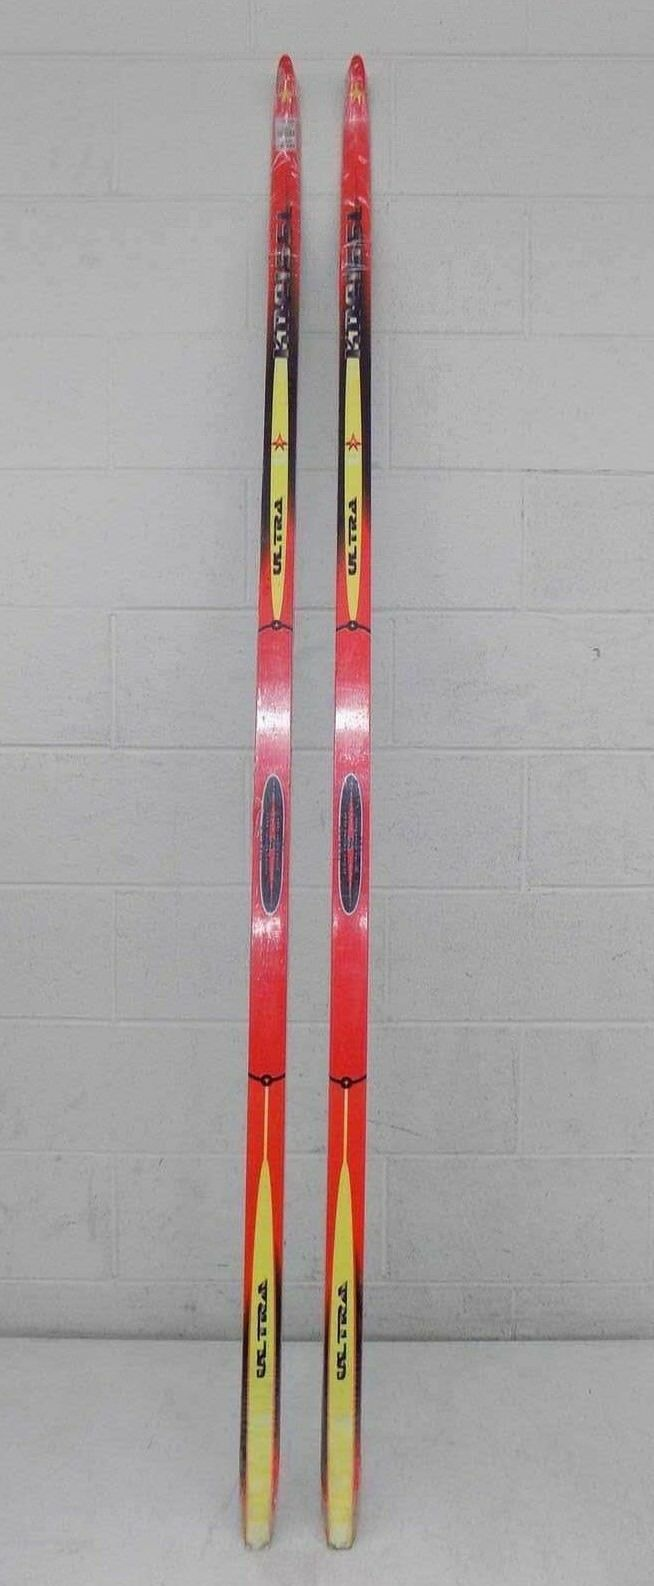 Kneissl Ultra 195cm Active Racing Base Ultra  Light  Cross Country Skis NEW  350  offering store